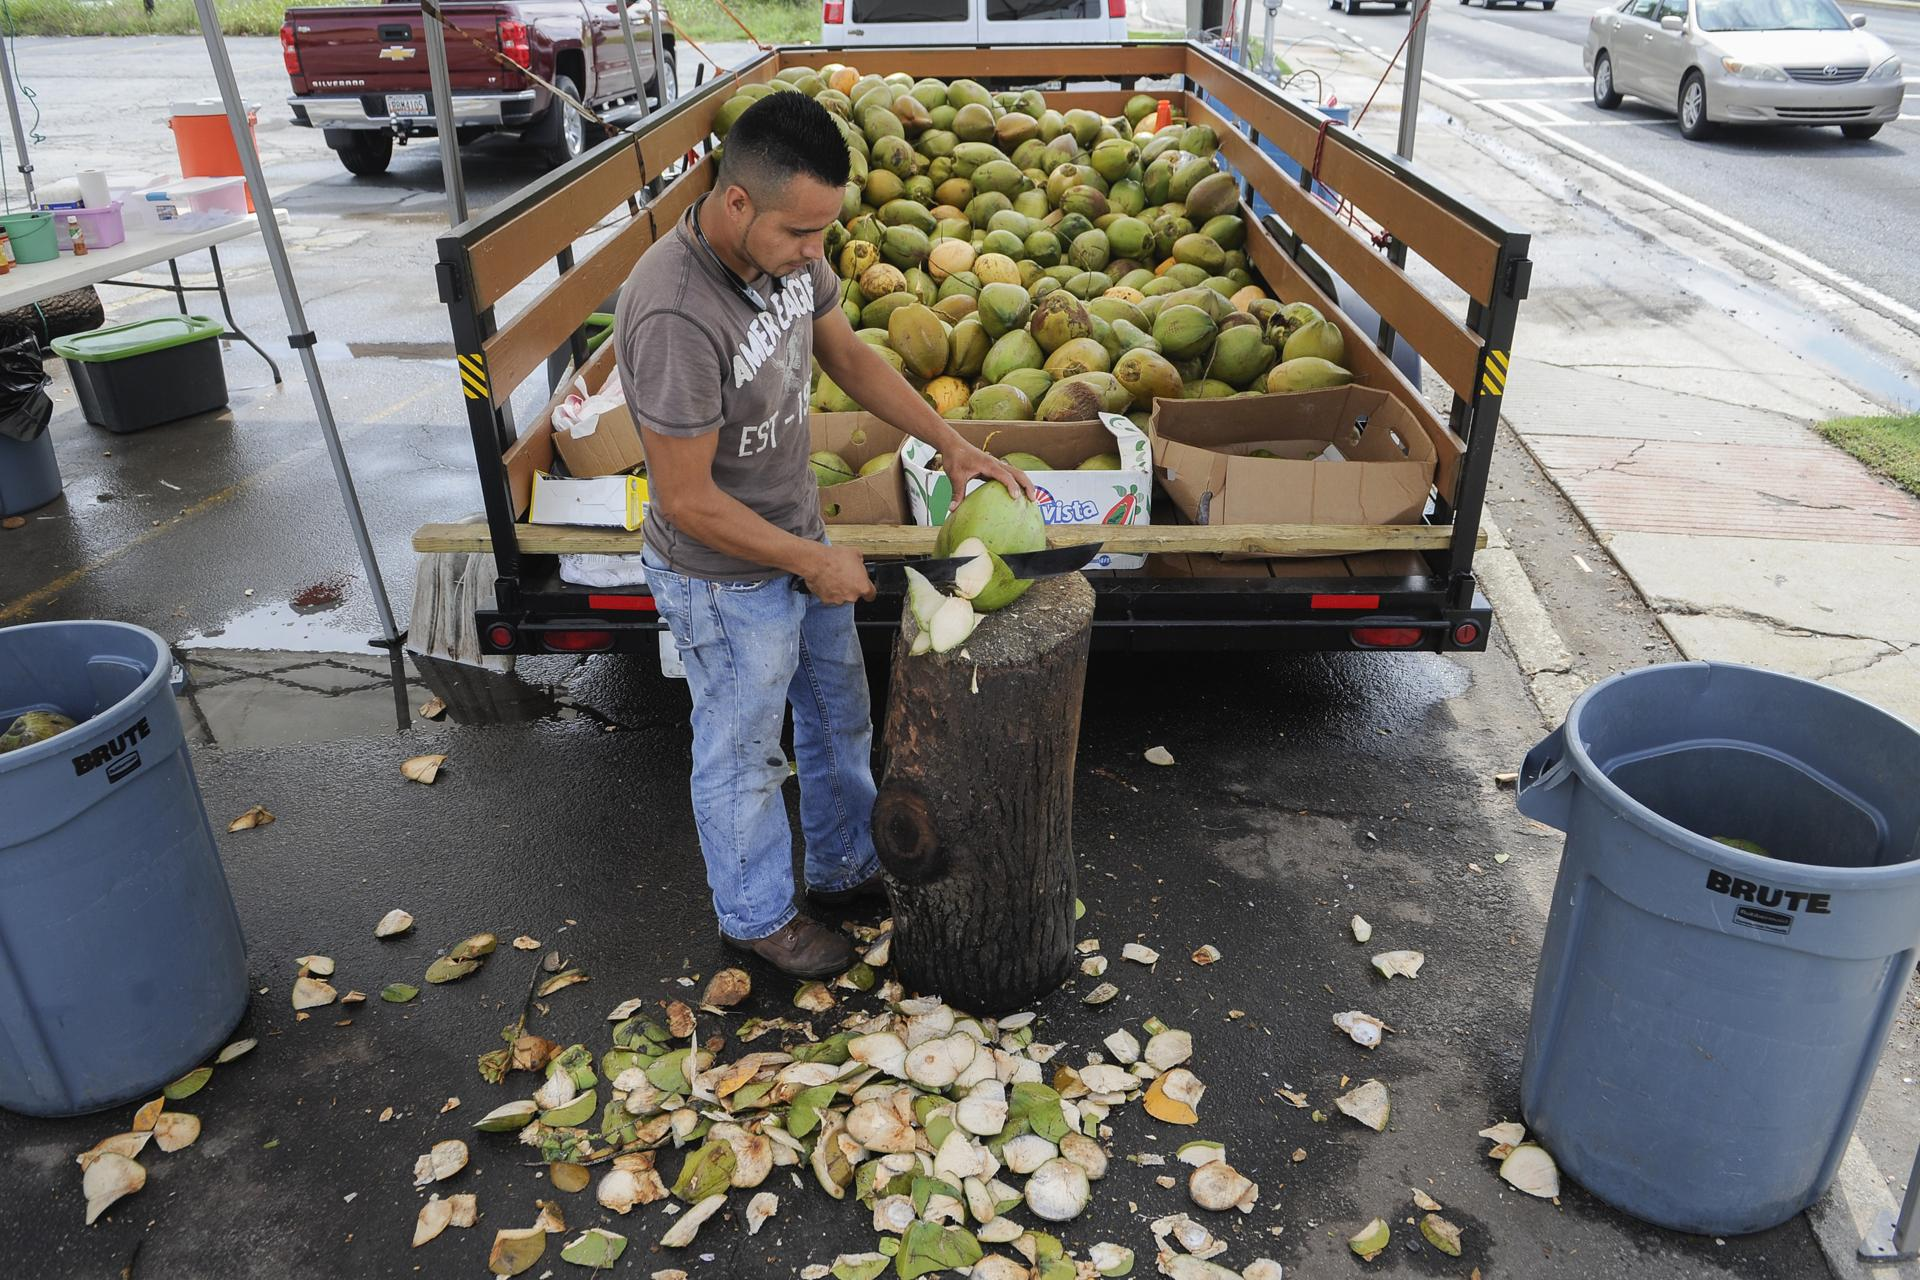 Odilon Rodriguez, of Mexico, is pictured late last month at the coconut stand at which he works alongside Buford Highway, in the vacant parking lot of a one time Dairy Queen, turned cafe, and which is now torn down.